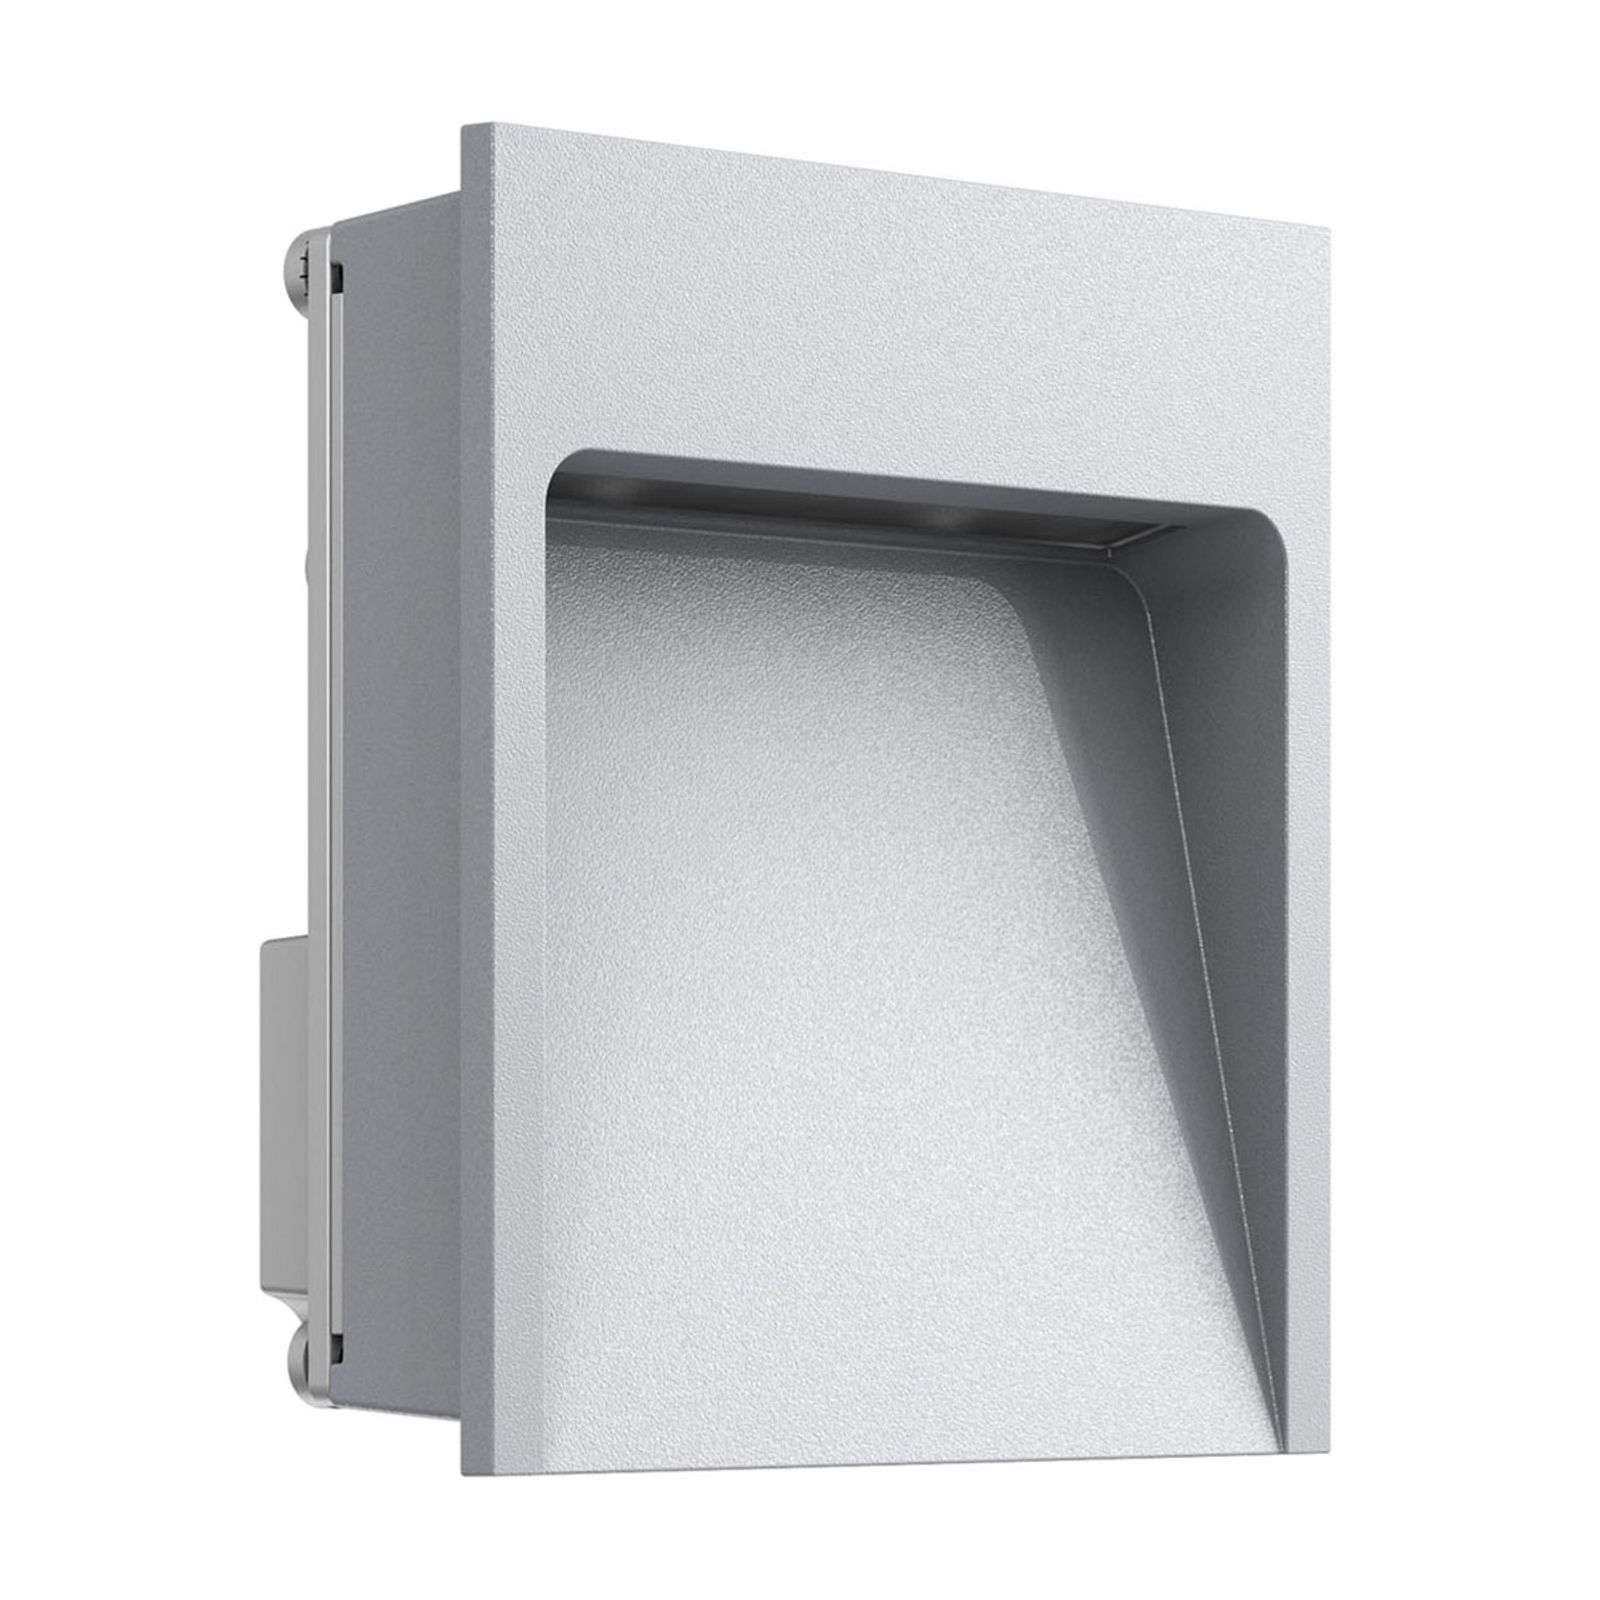 Foco de pared LED empotrable My Way pequeño, gris